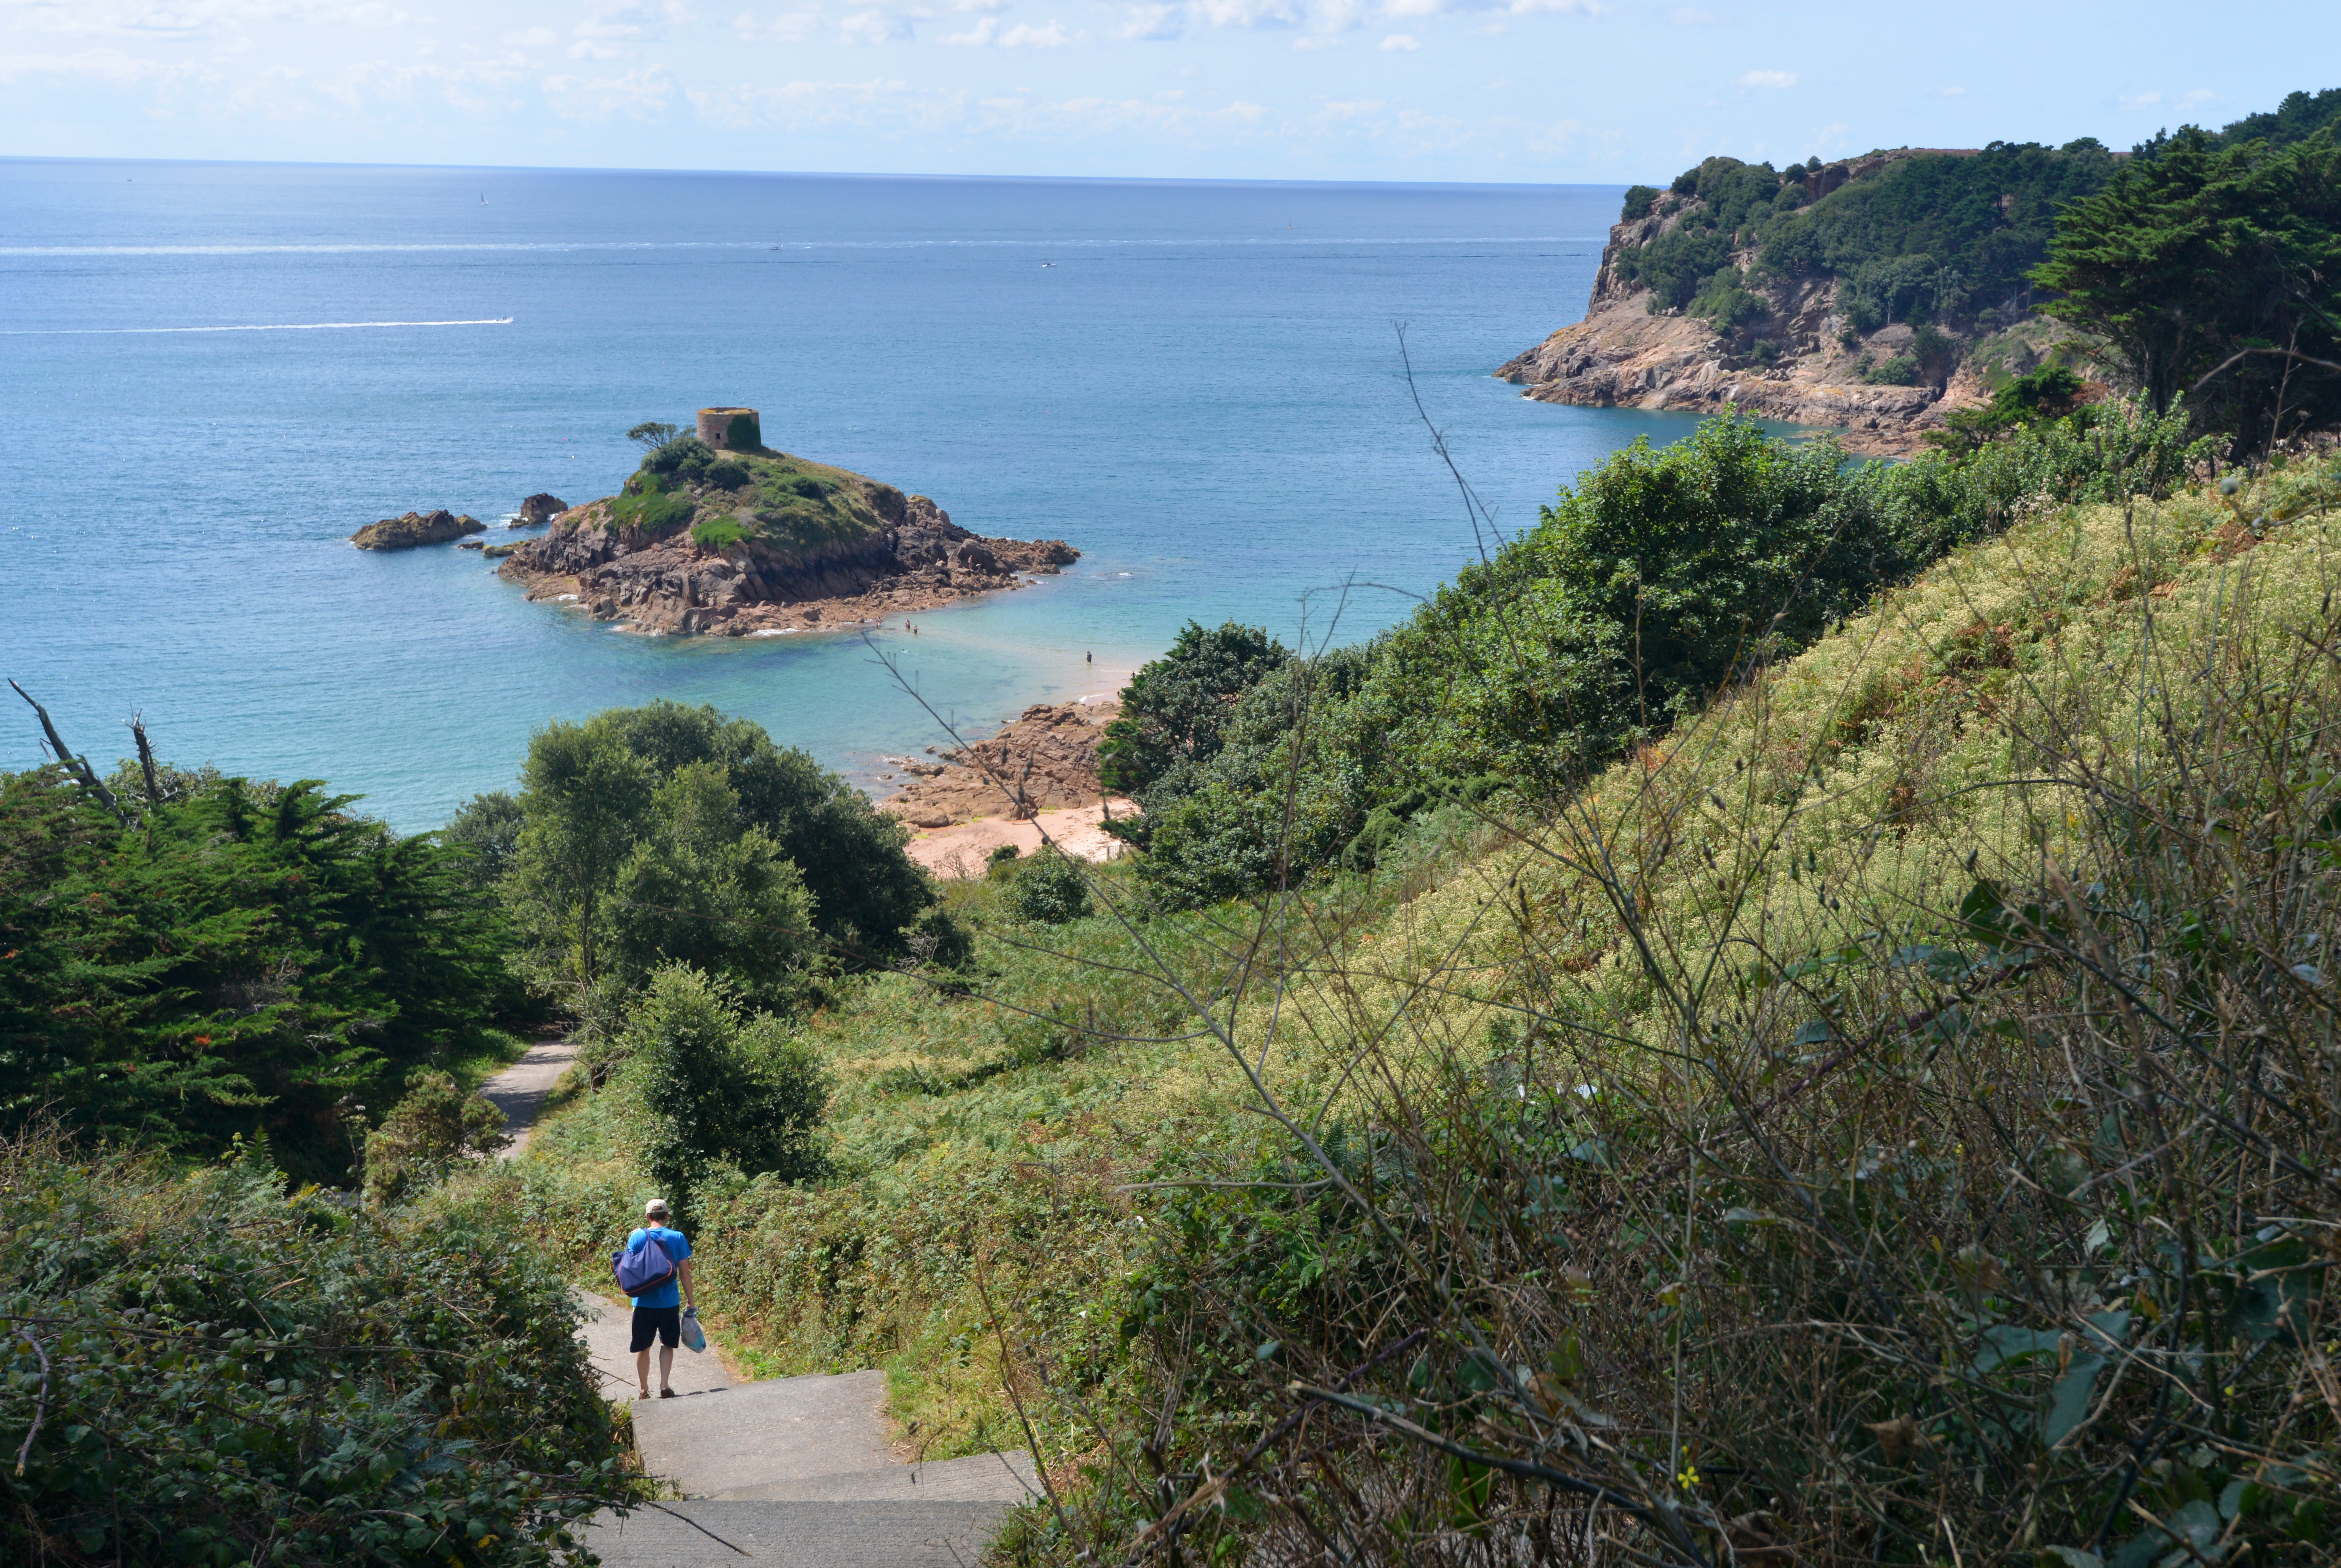 Jersey: Channeling Island Life